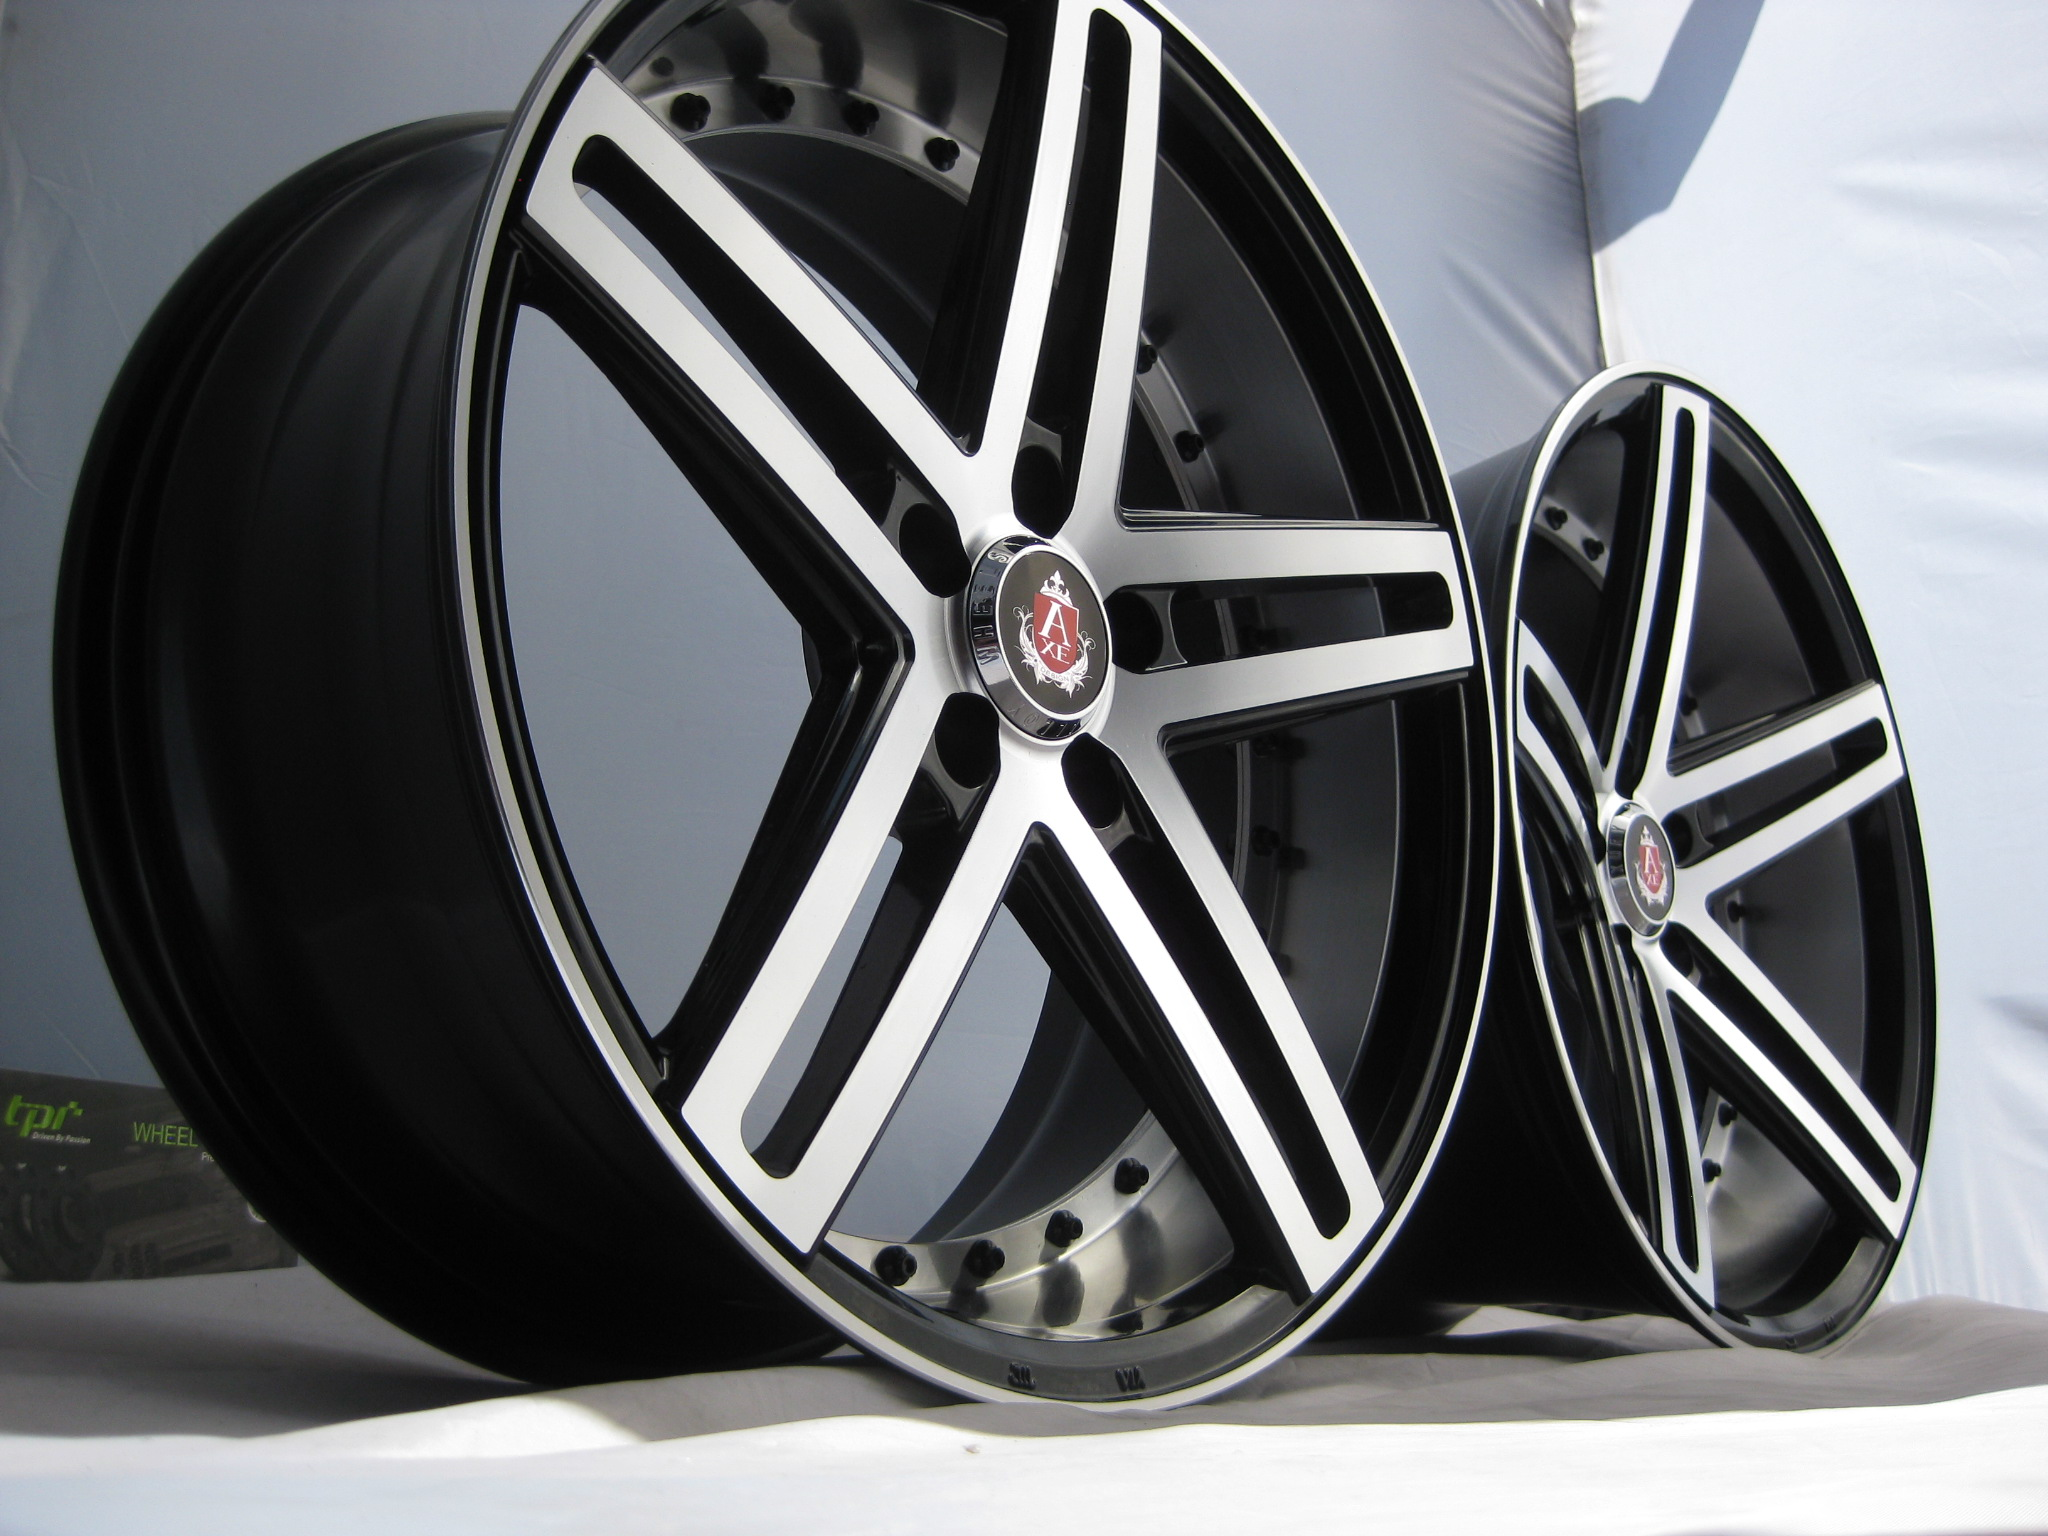 New 20 Quot Axe Ex20 Alloy Wheels In Black With Polished Face